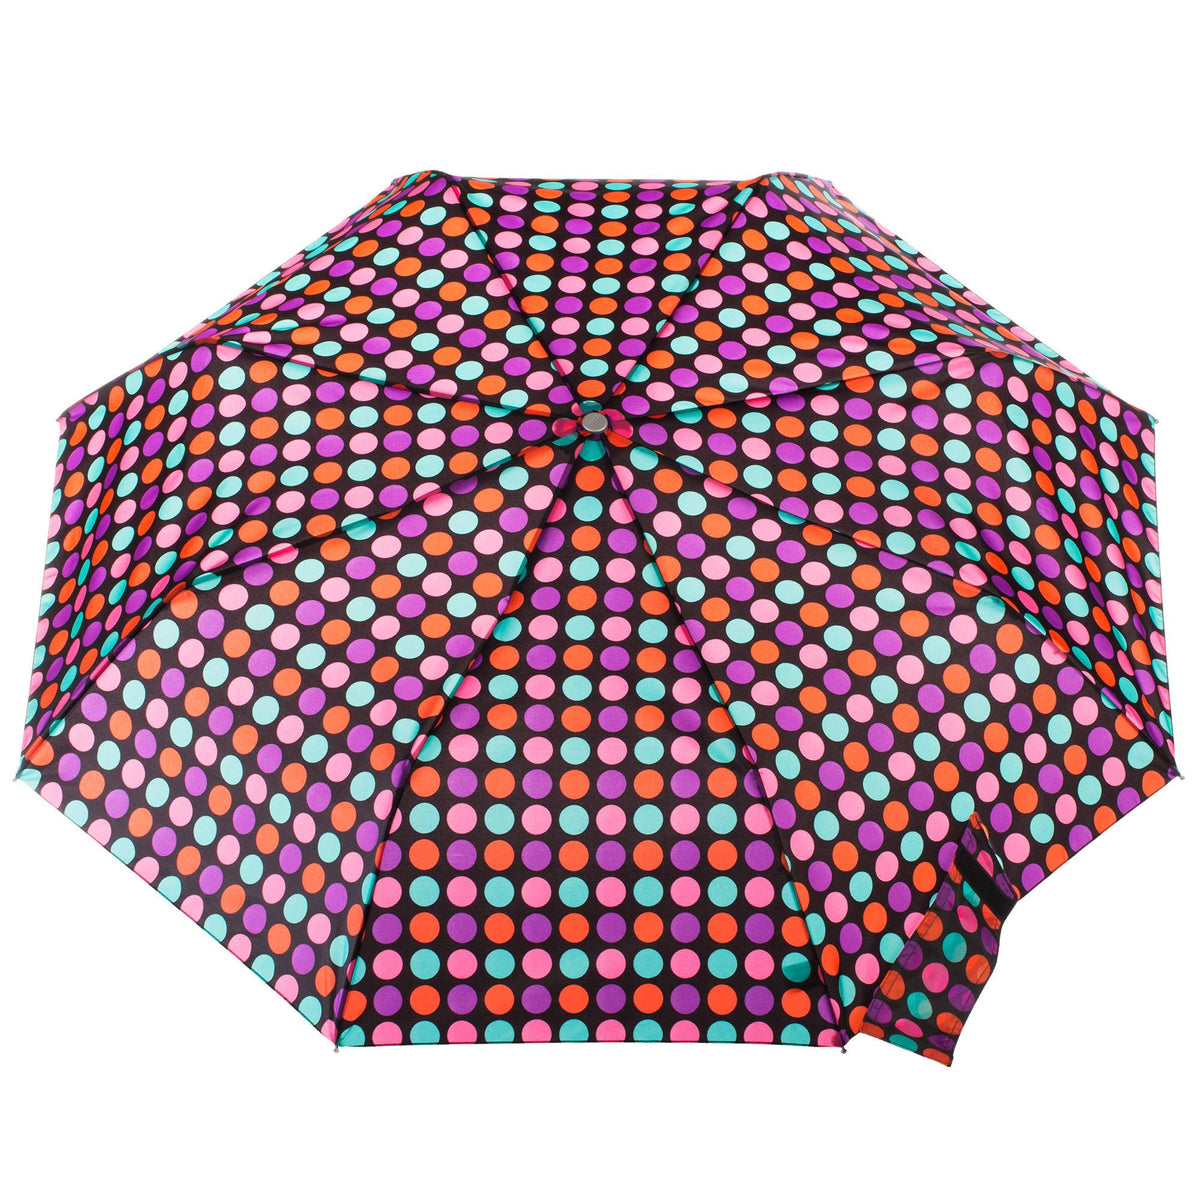 totes Automatic Classic Compact SunGuard® and NeverWet® Umbrella